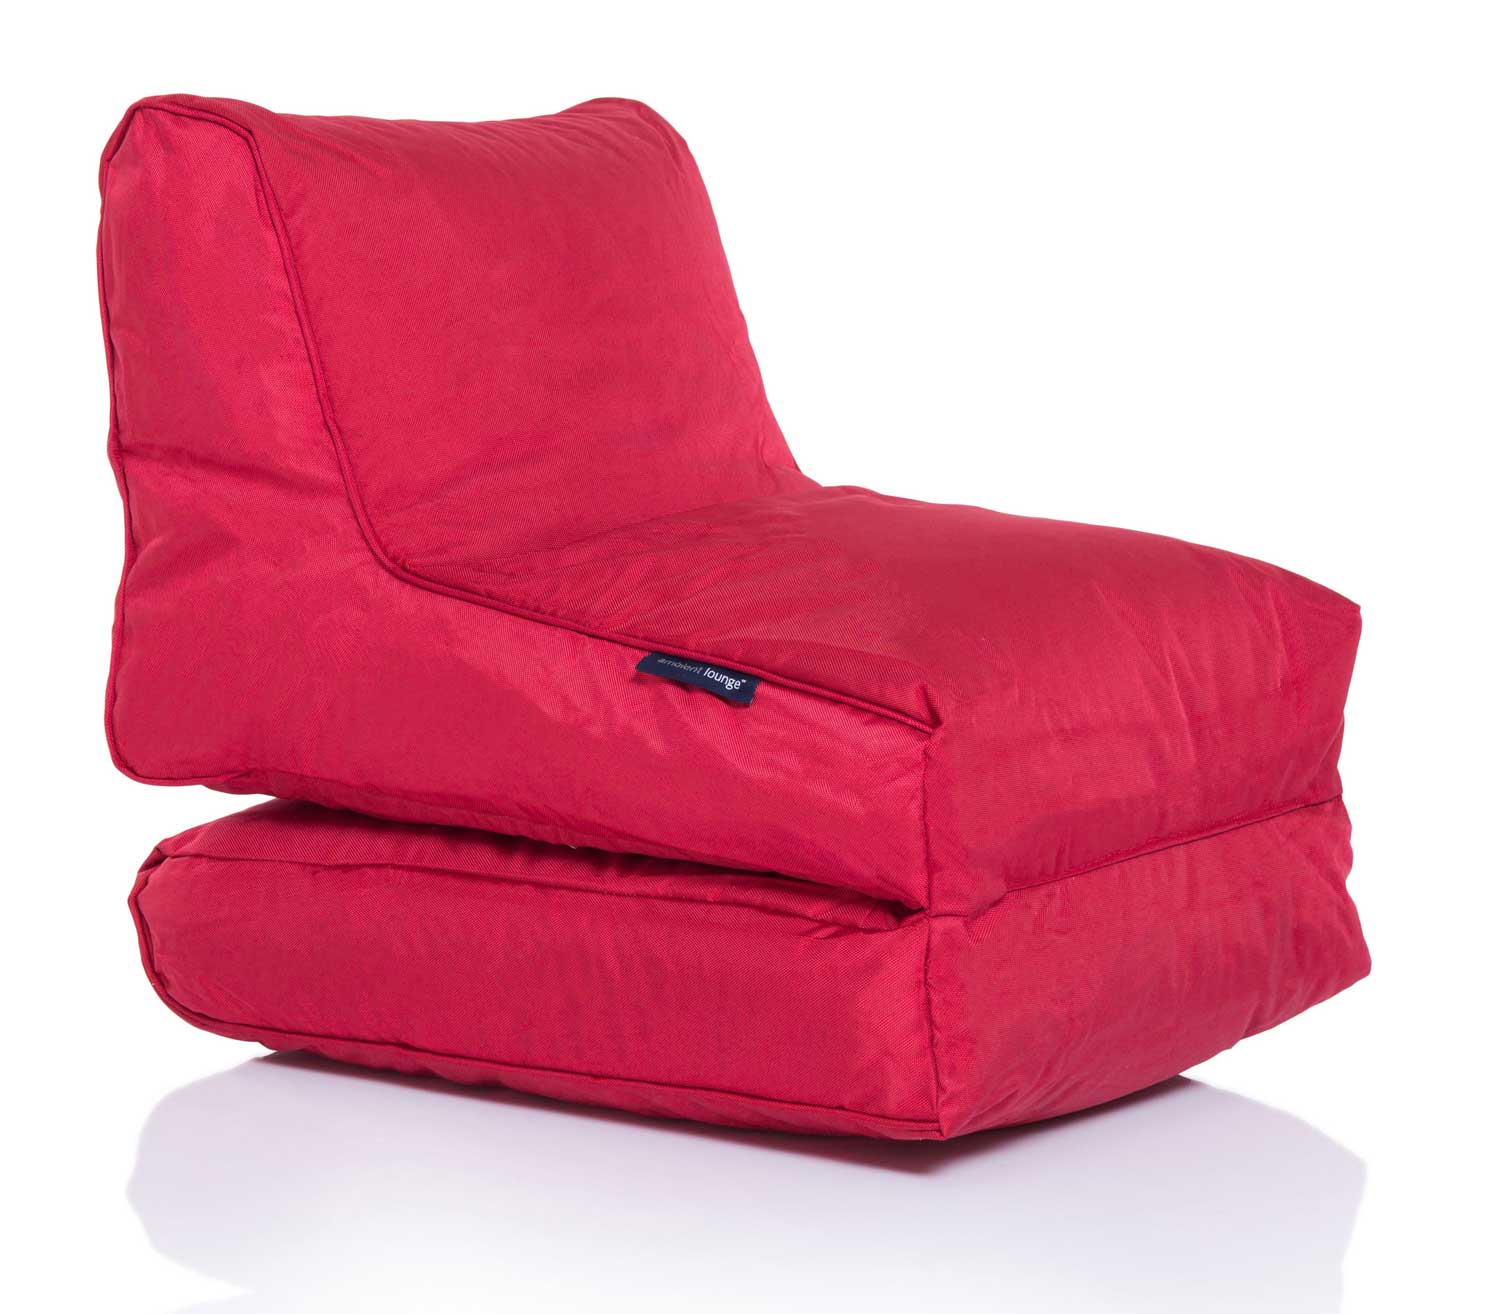 Conversion Lounger Toro Red